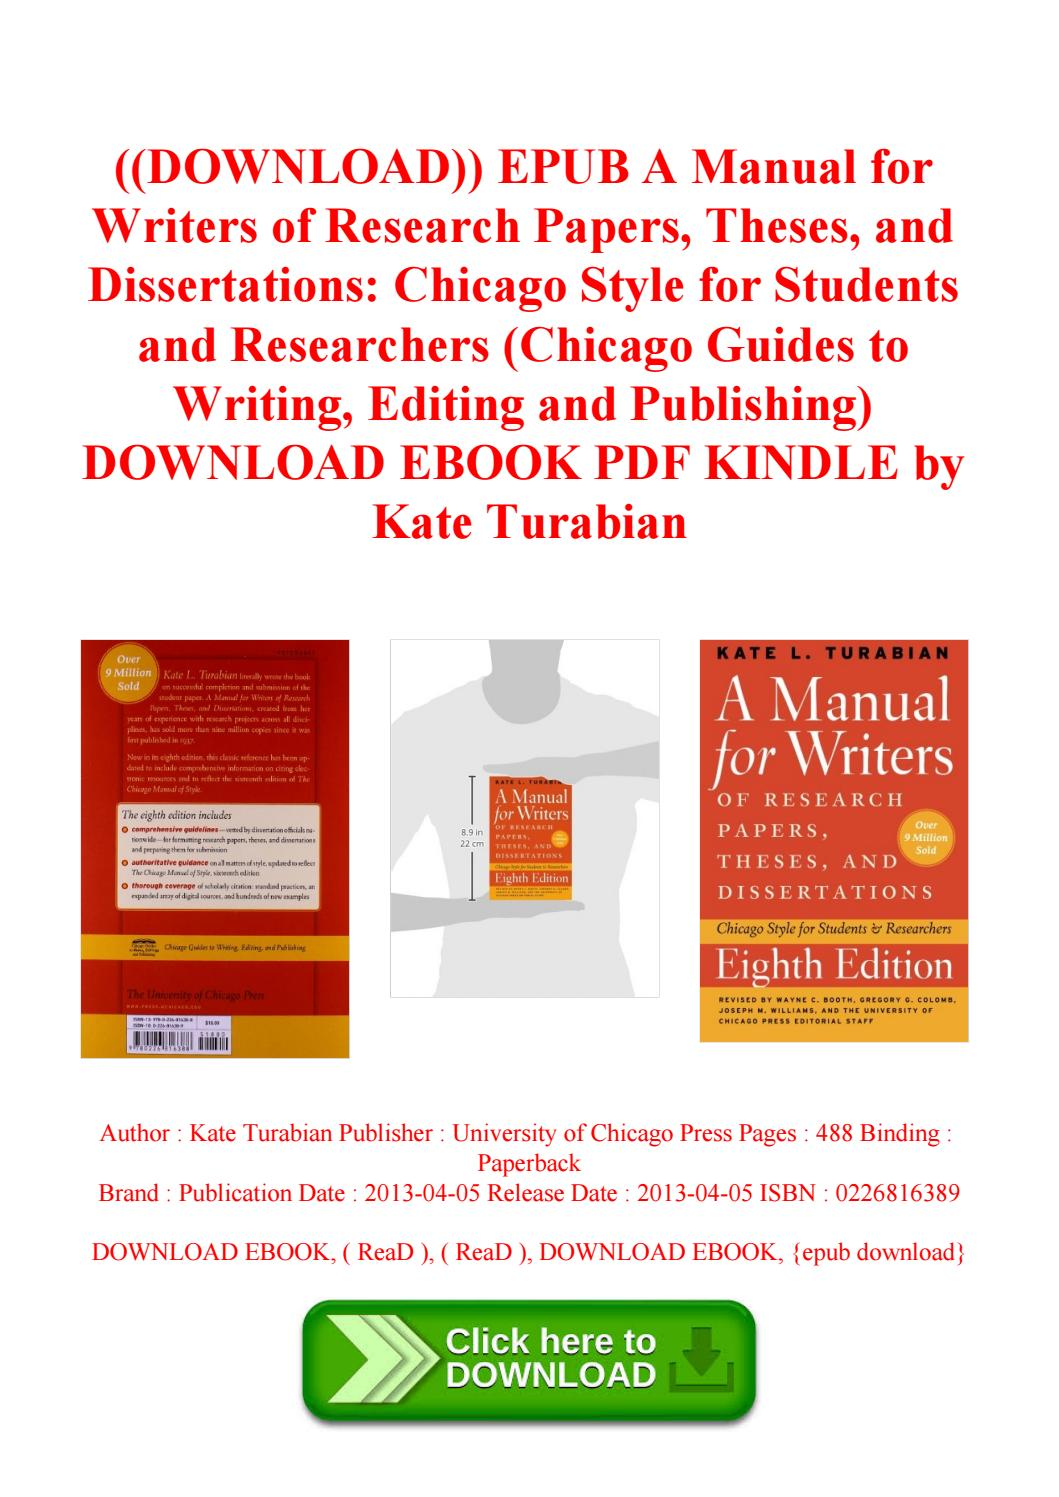 011 Page 1 Manual For Writers Of Researchs Theses And Dissertations Fearsome A Research Papers Ed 8 Full